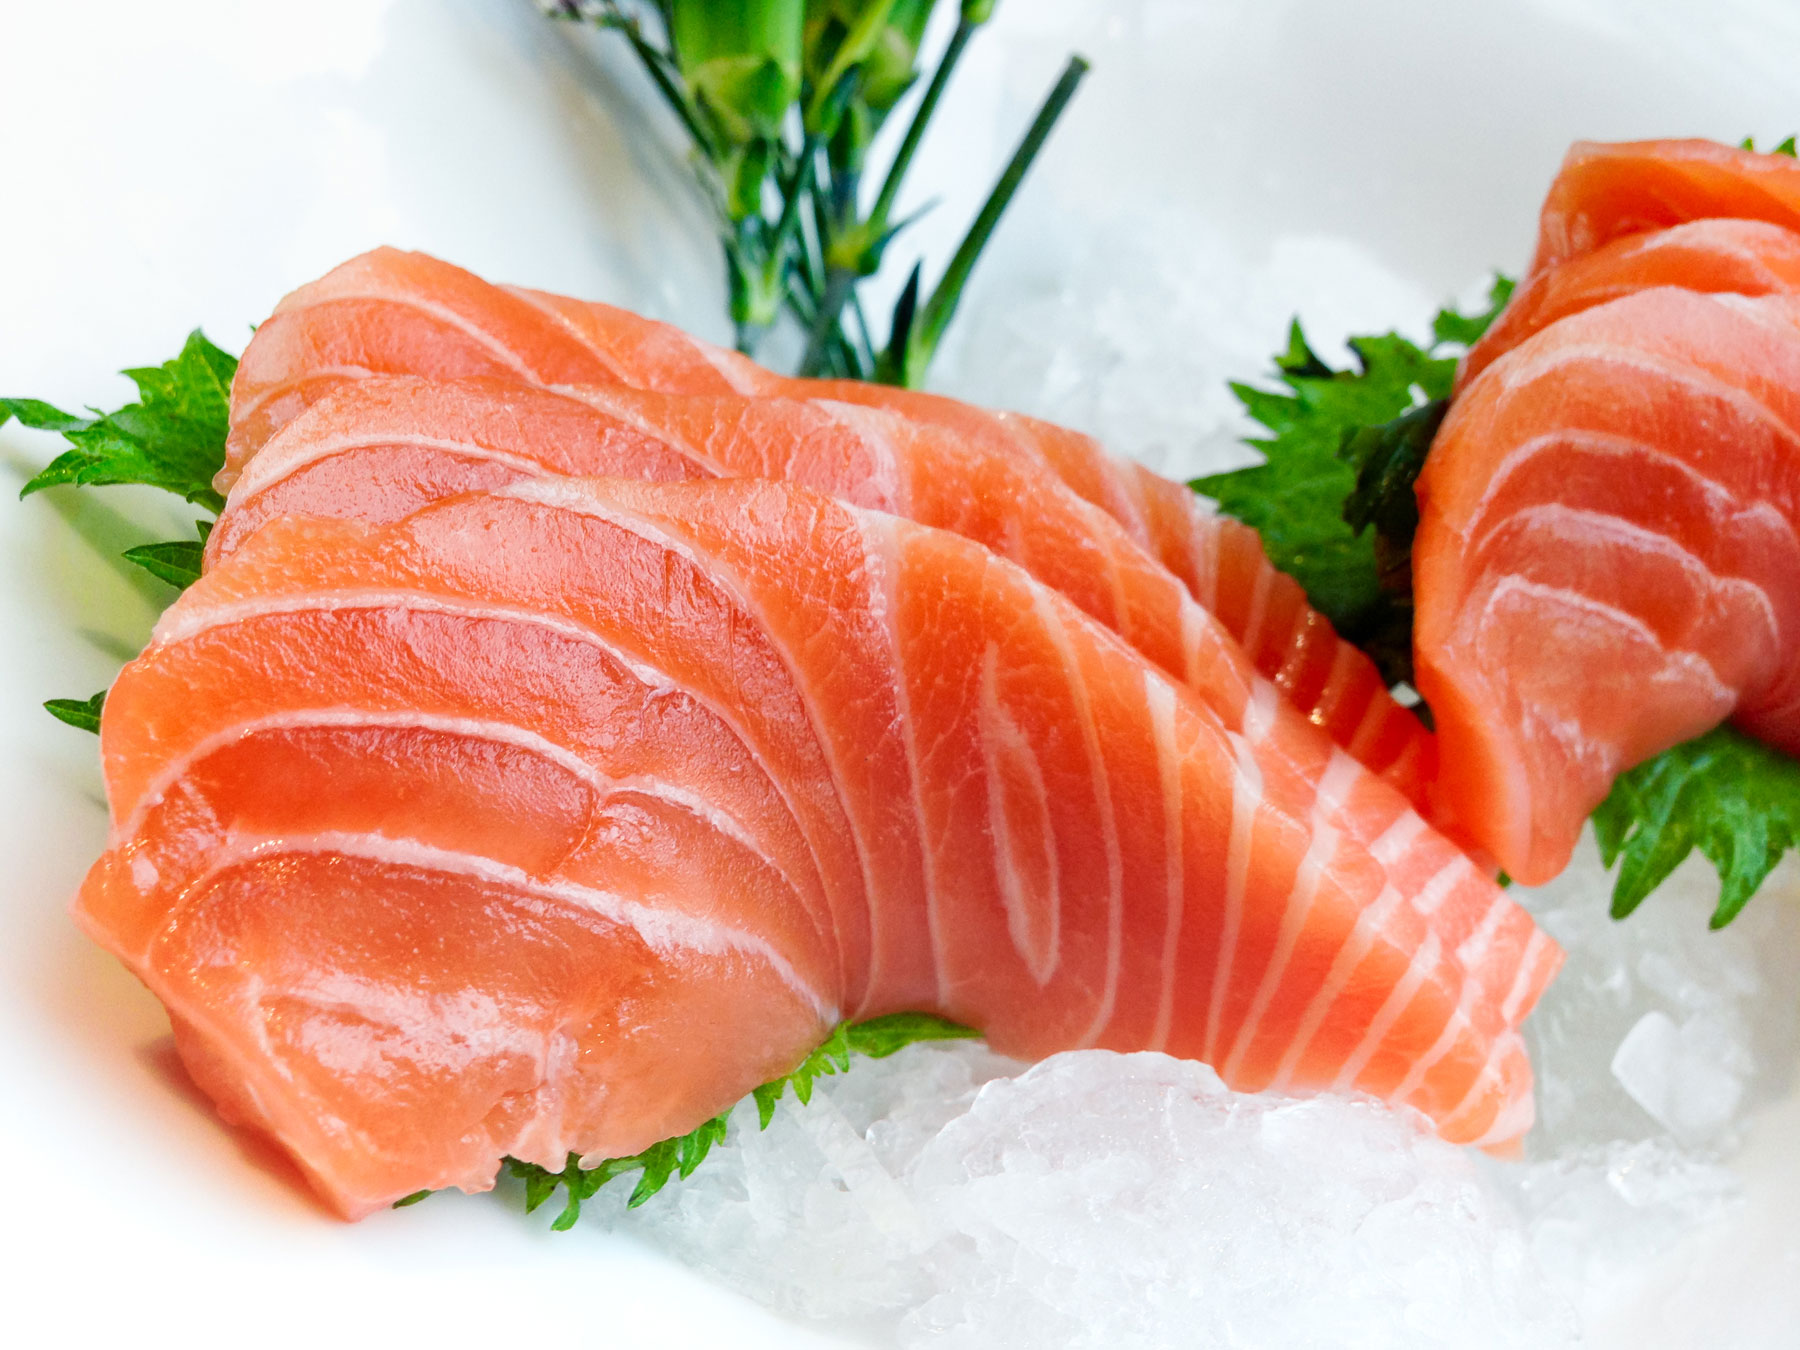 Raw, fresh salmon resting on clean, crushed iced.